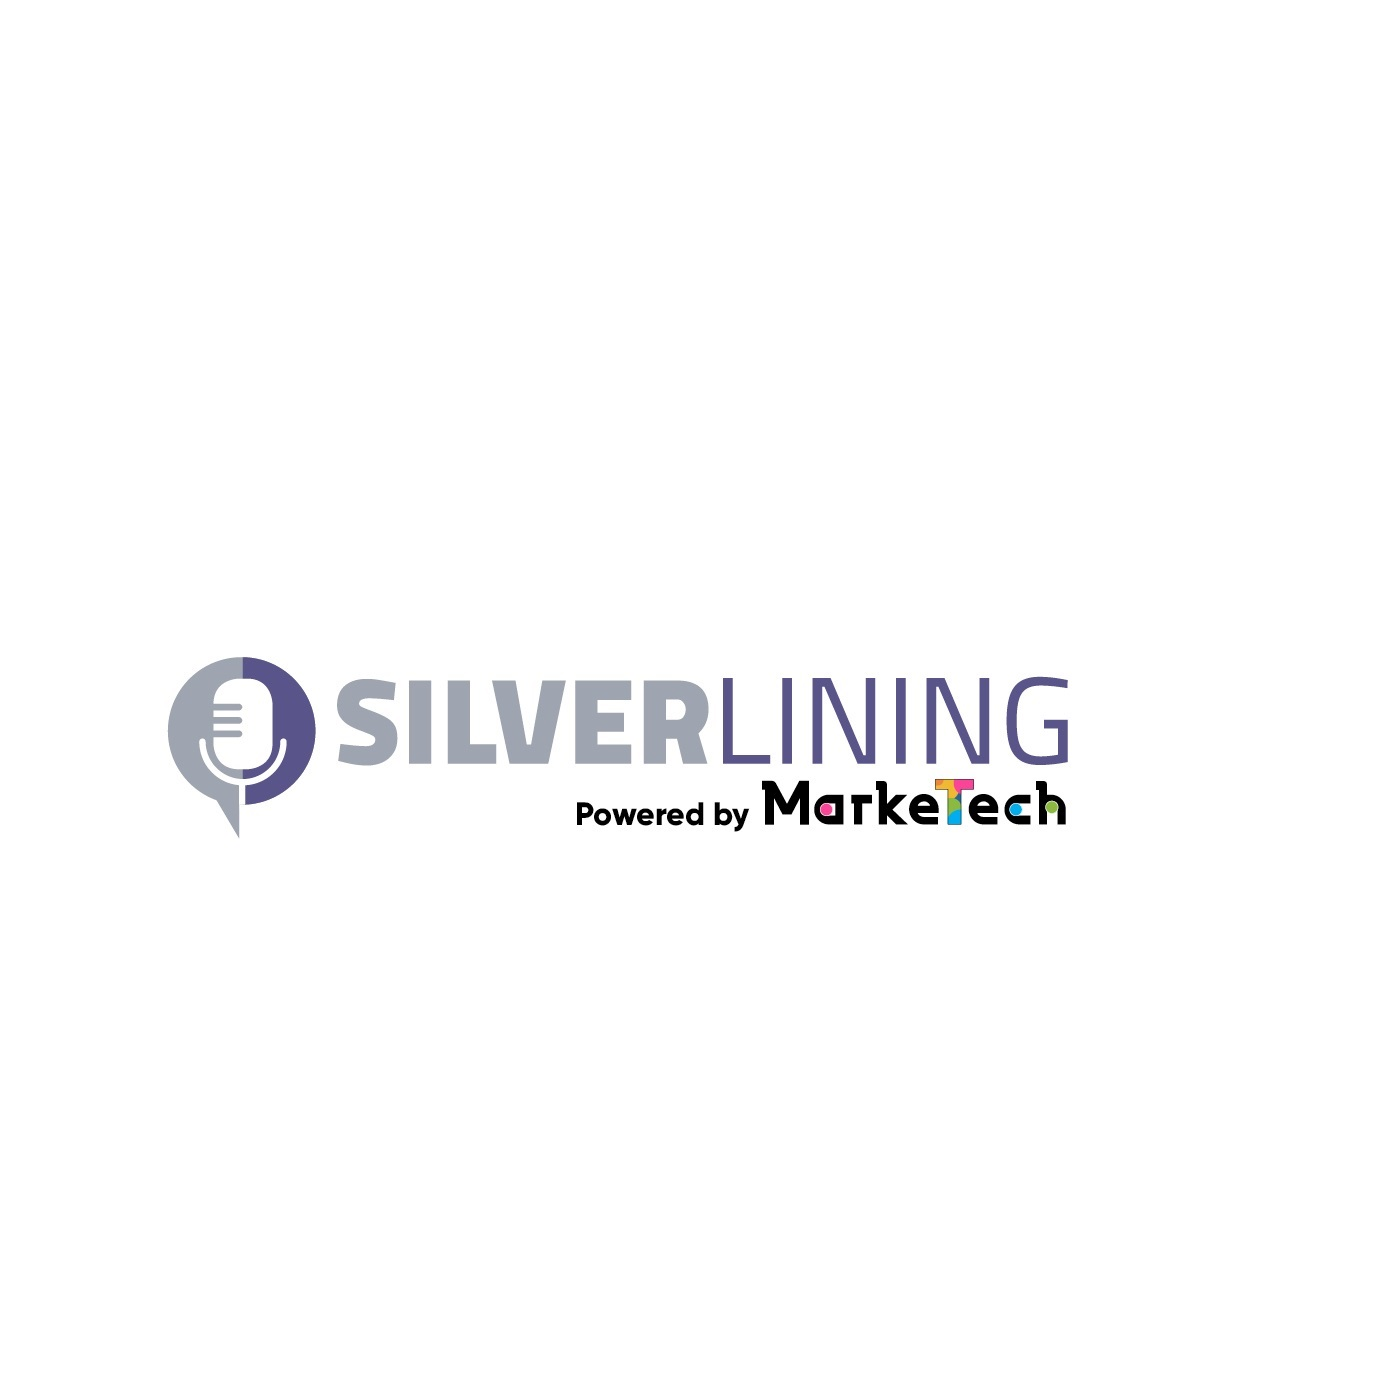 SilverLining Episode 39: Securing API Services